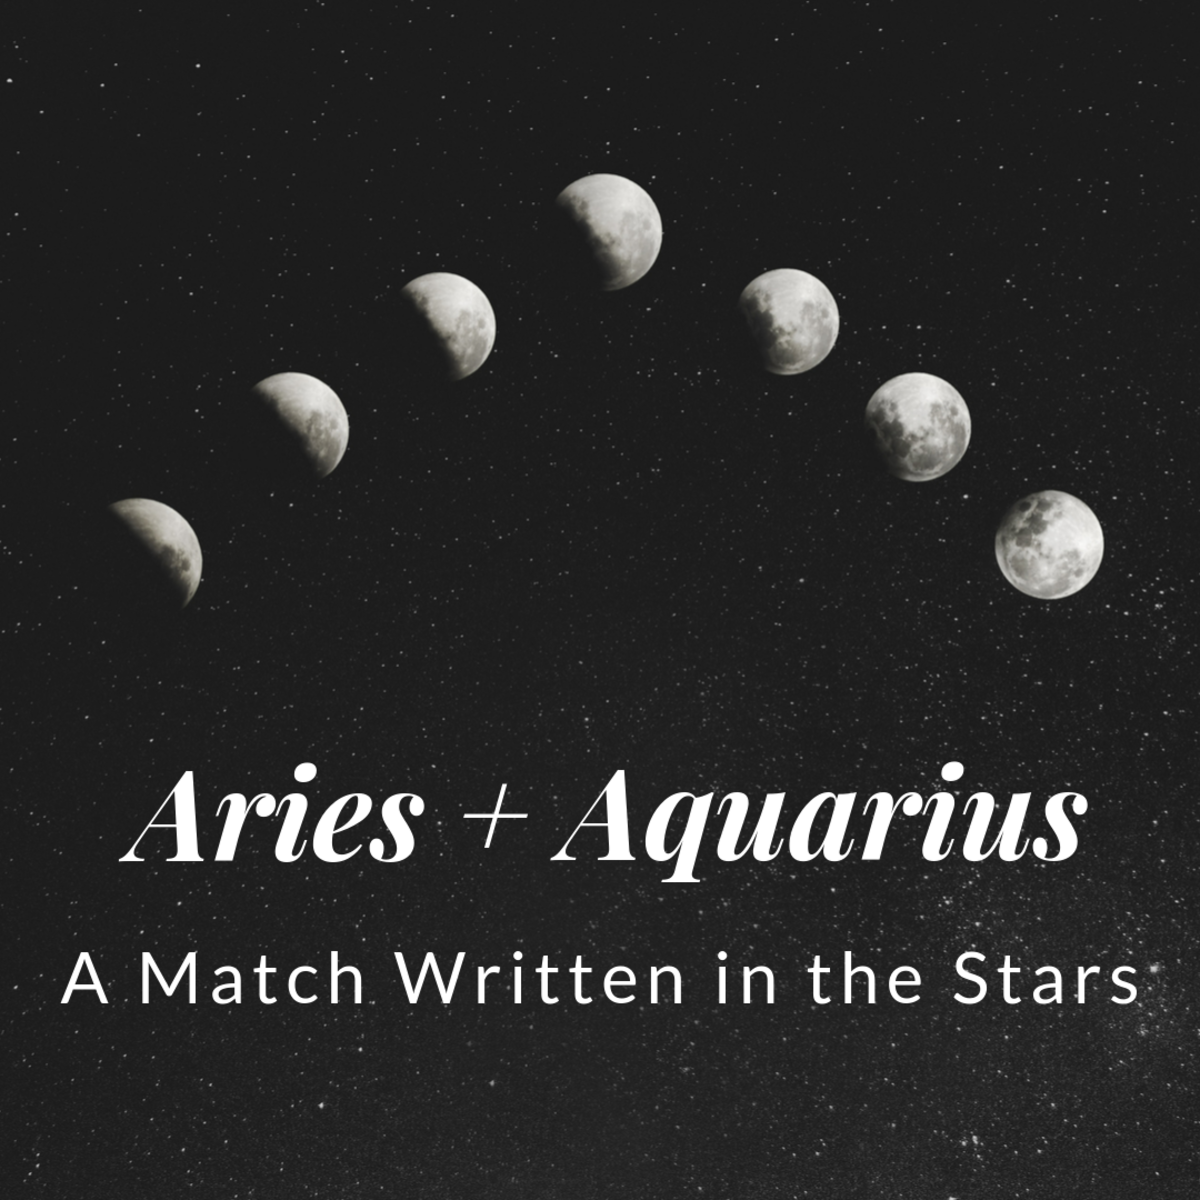 Why Aries and Aquarius Are Attracted to Each Other